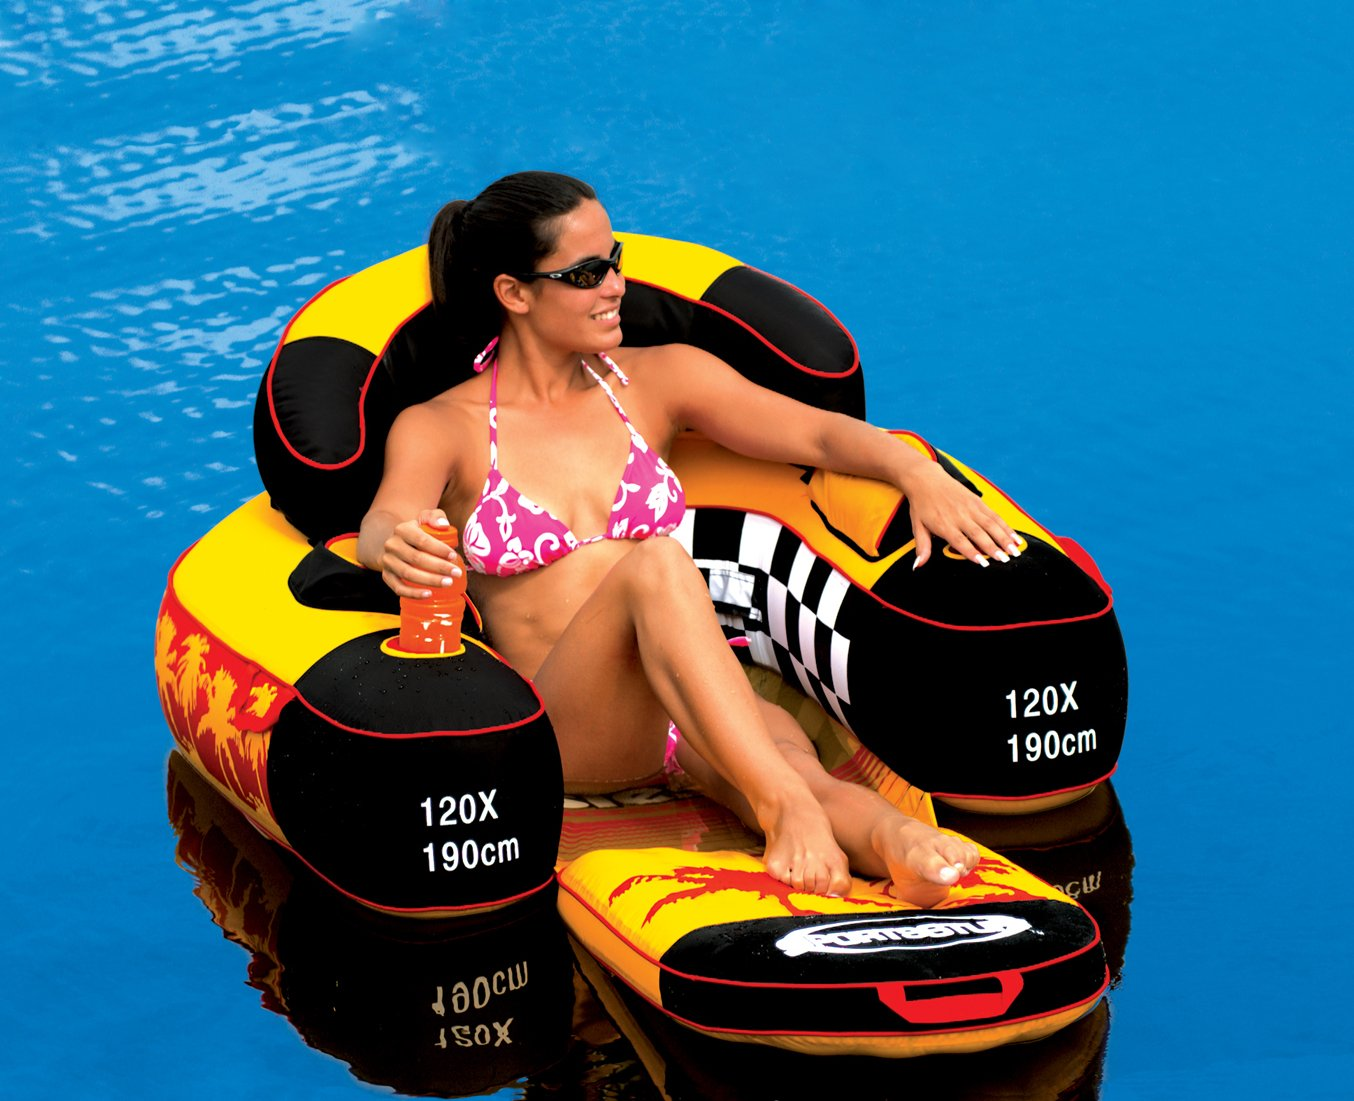 River Rafting Float Lake Pool Tube Inflatable Lounge Chair Water Toy Swimming